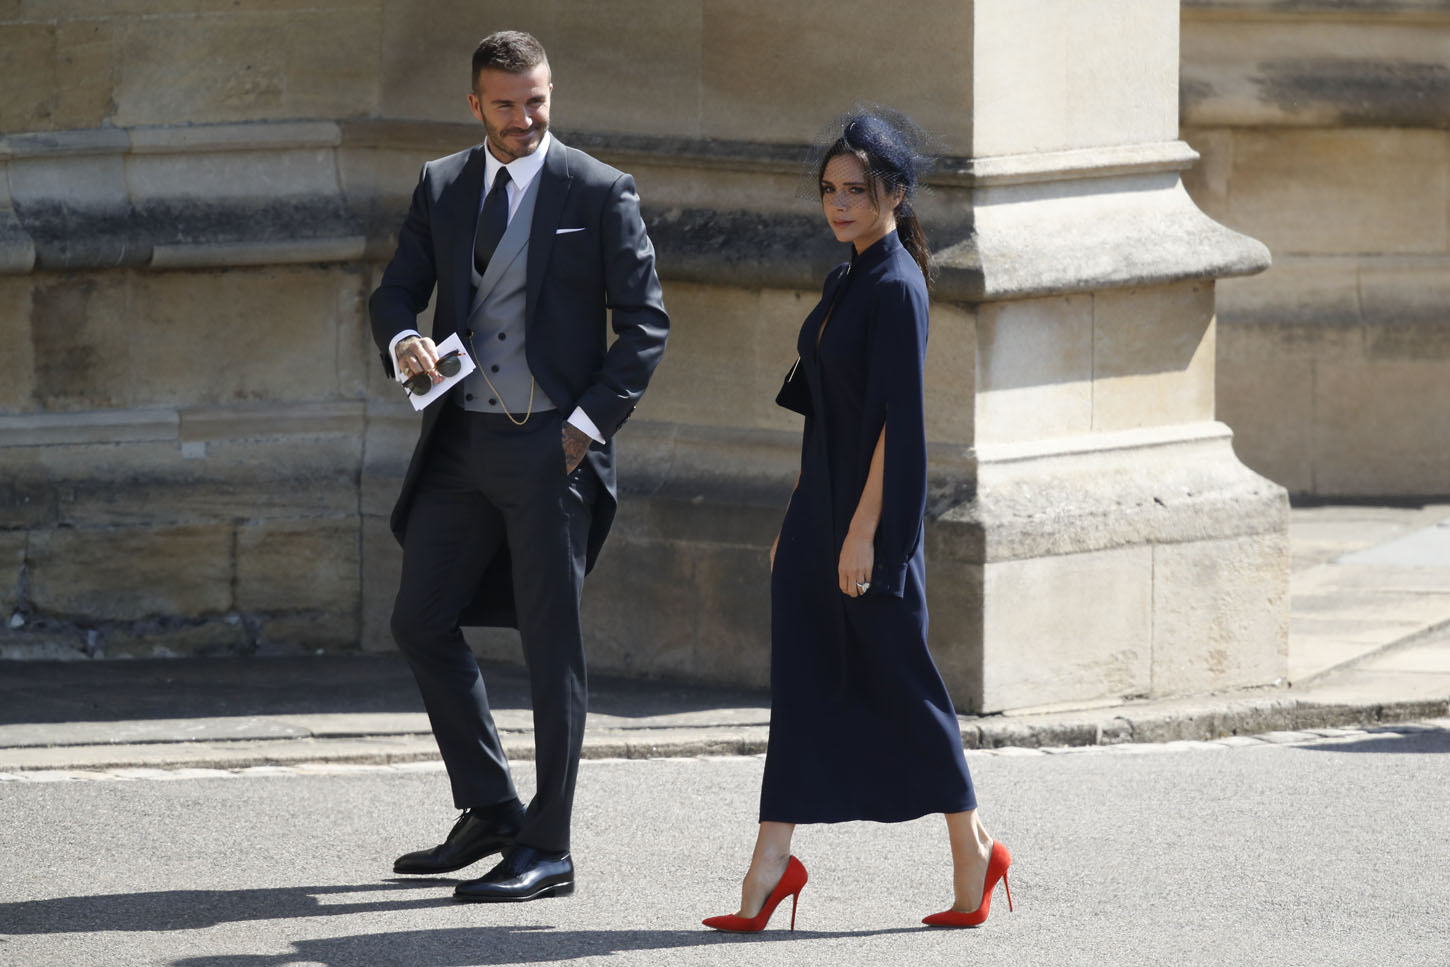 WINDSOR, UNITED KINGDOM - MAY 19:  David Beckham and Victoria Beckham arrive at St George's Chapel at Windsor Castle before the wedding of Prince Harry to Meghan Markle on May 19, 2018 in Windsor, England. (Photo by Odd ANDERSEN - WPA Pool/Getty Images)